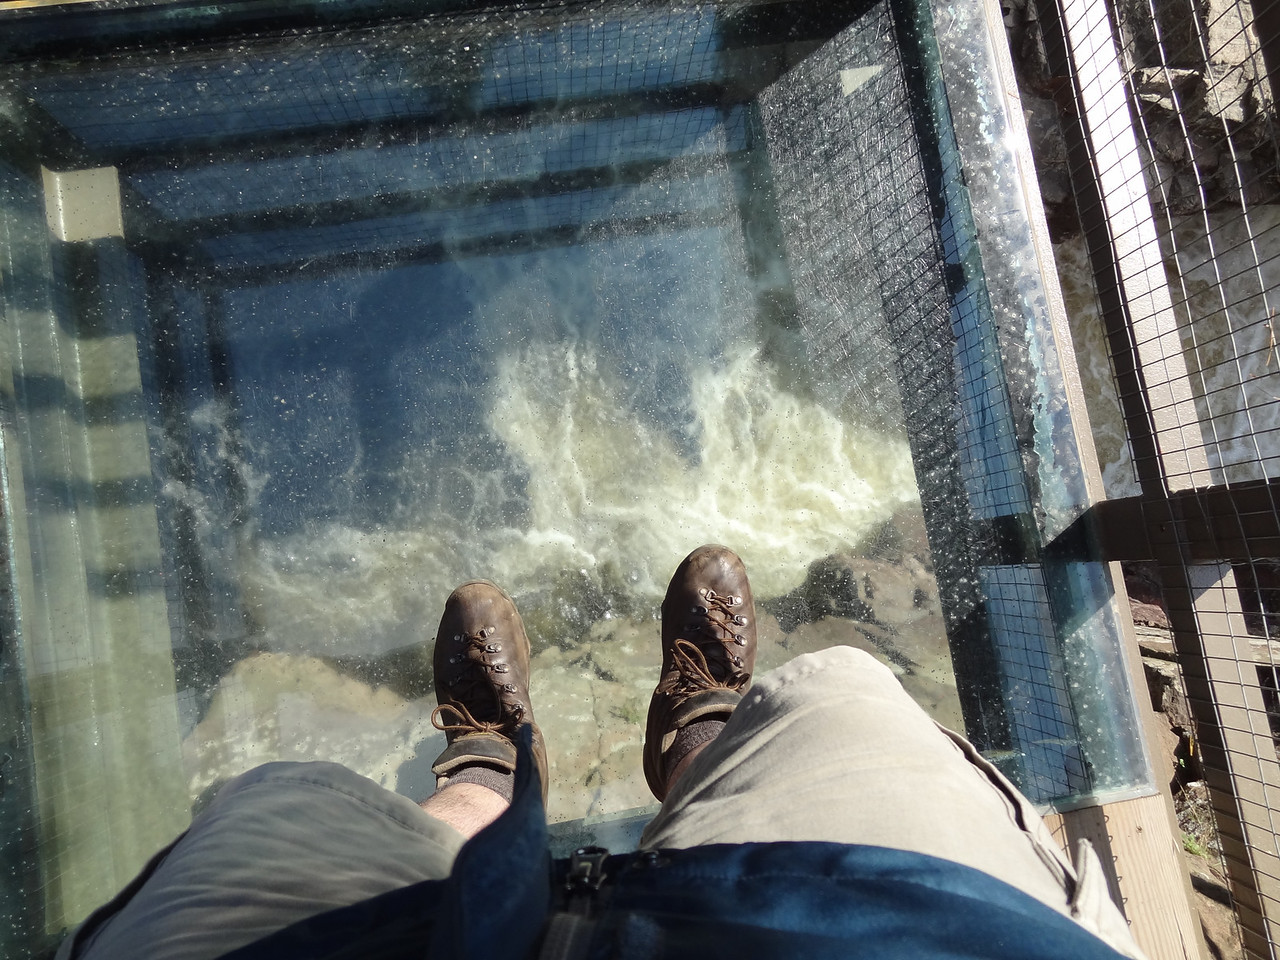 The walkway had a few plexiglass plates to stand on and risk your life. I had to do it. Rumor has it that no human being was ever brave enough to stand on the glass until I did it.